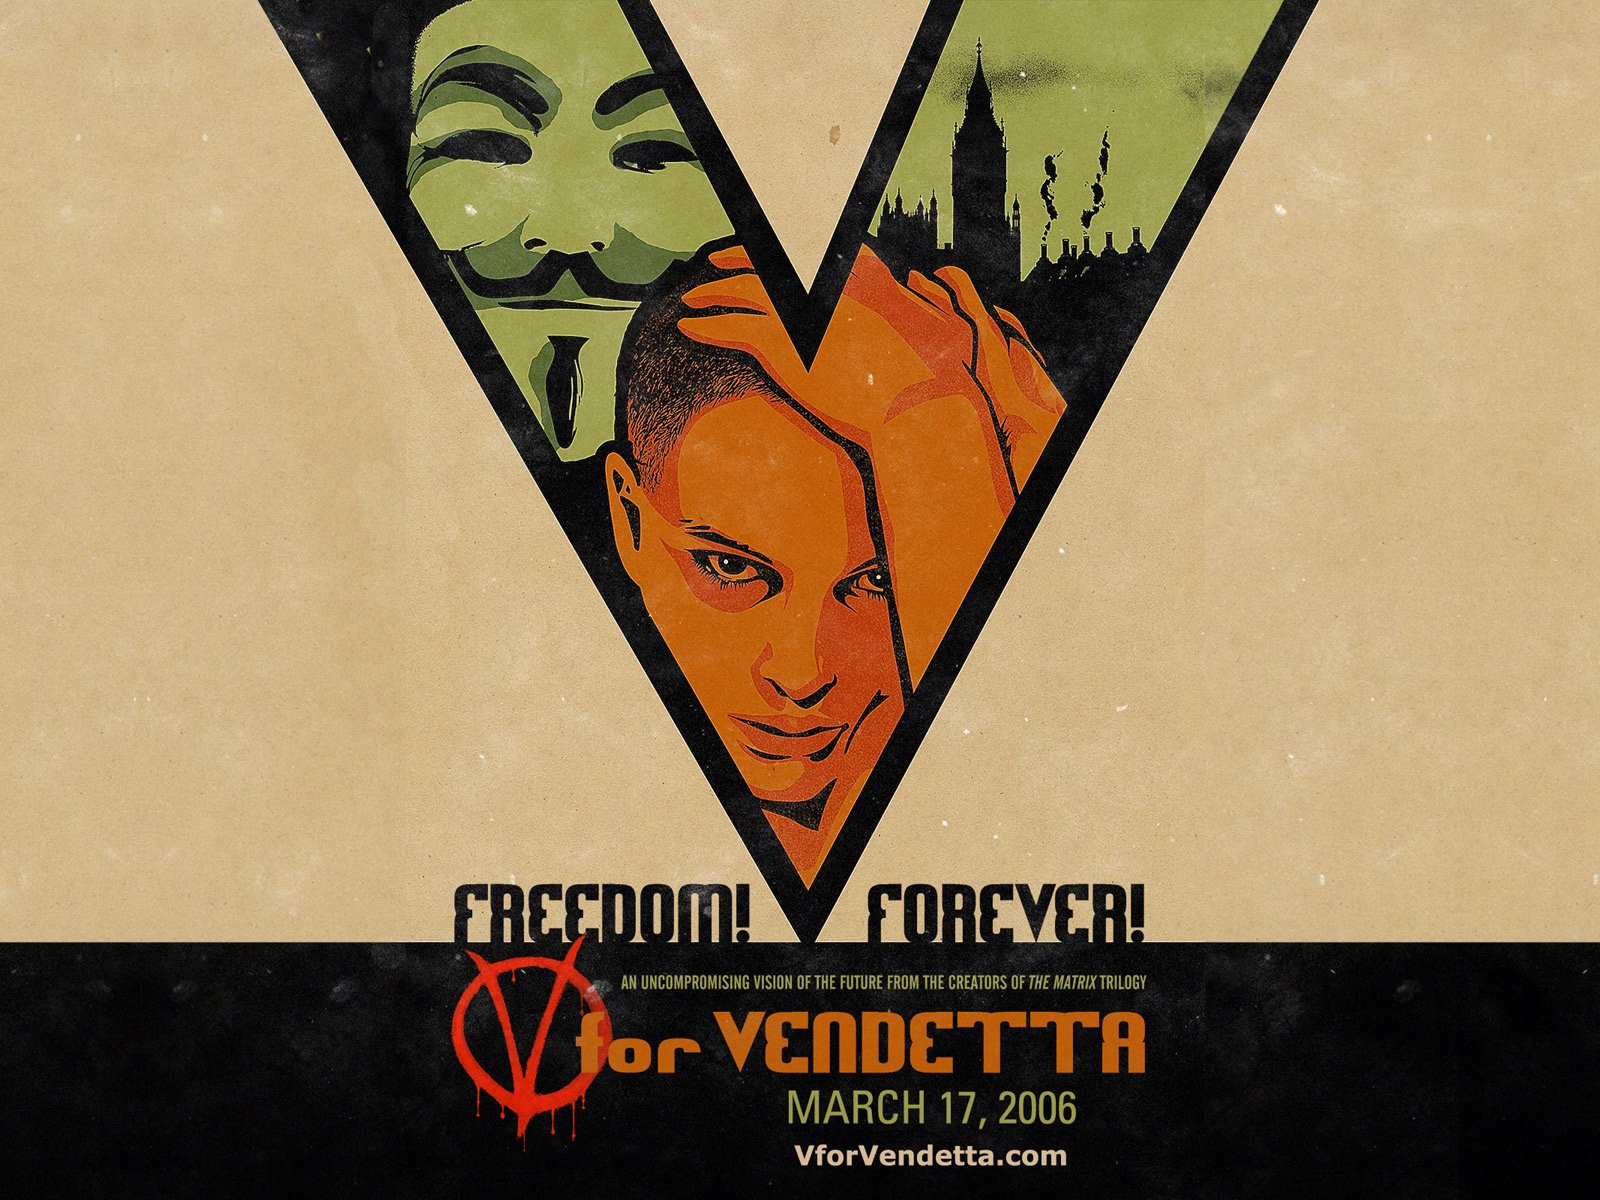 http://1.bp.blogspot.com/-S8XfsxxK0dw/TscX25REl_I/AAAAAAAAApU/cI--P5FzdLY/s1600/v-for-vendetta-background-11-719651.jpg